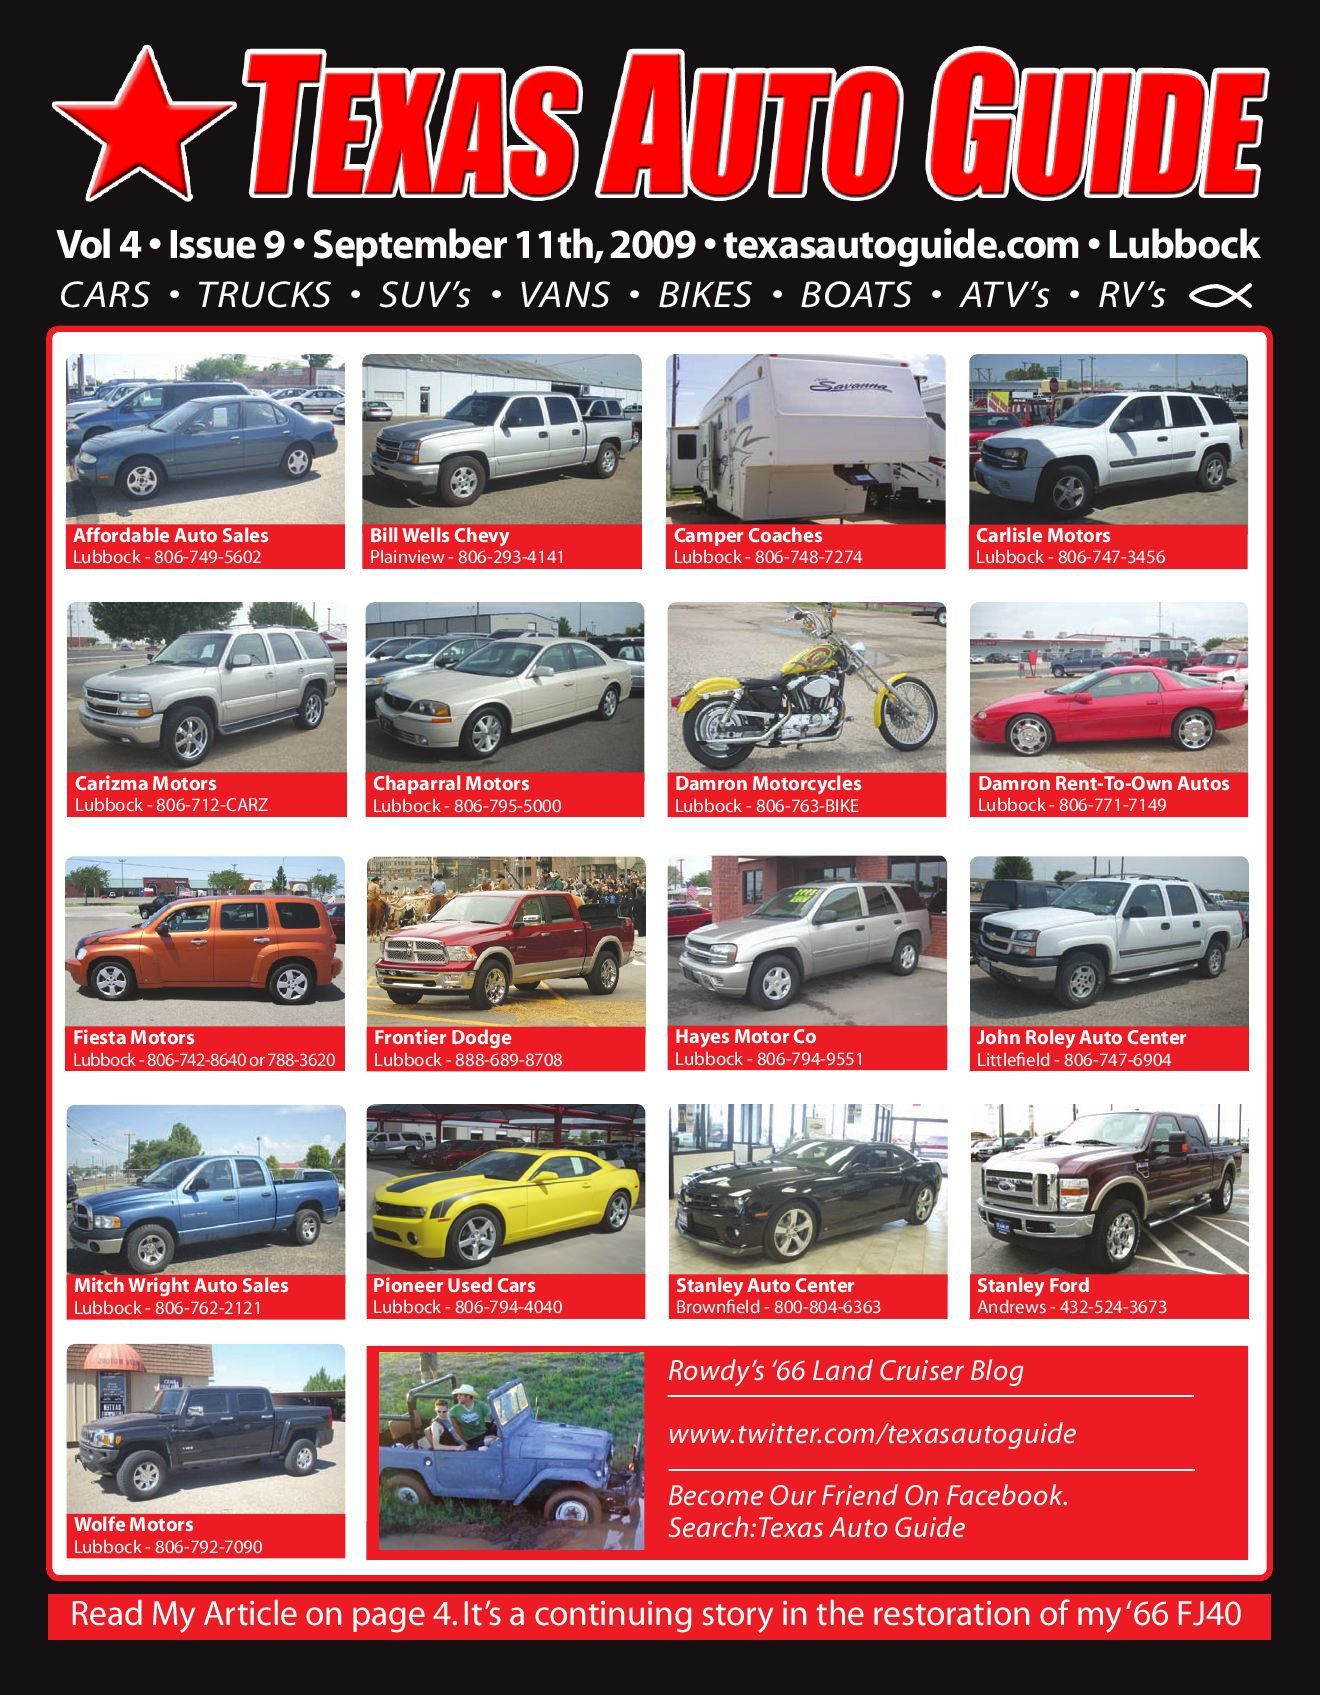 Texas auto guide lubbock 9 11 09 by texas auto guide issuu for Carizma motors lubbock tx